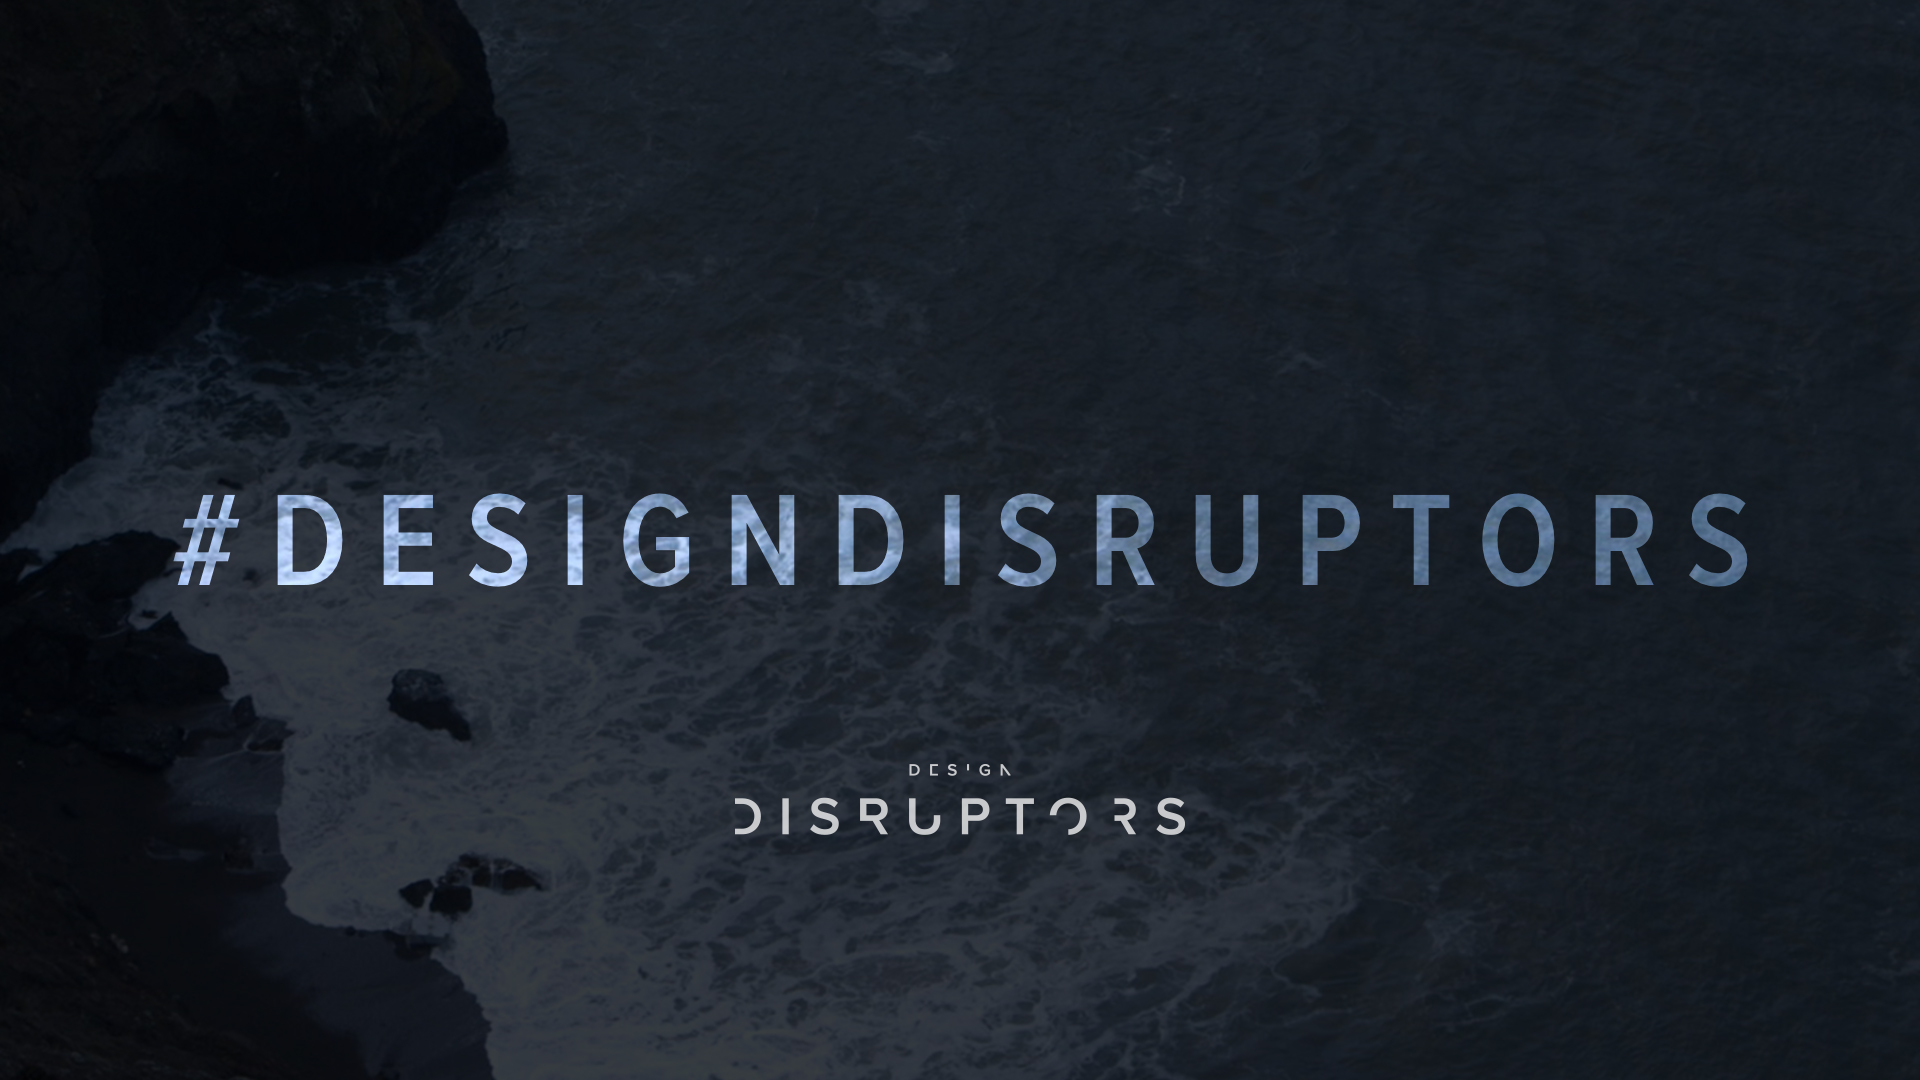 GA X InVision: Design Disruptors